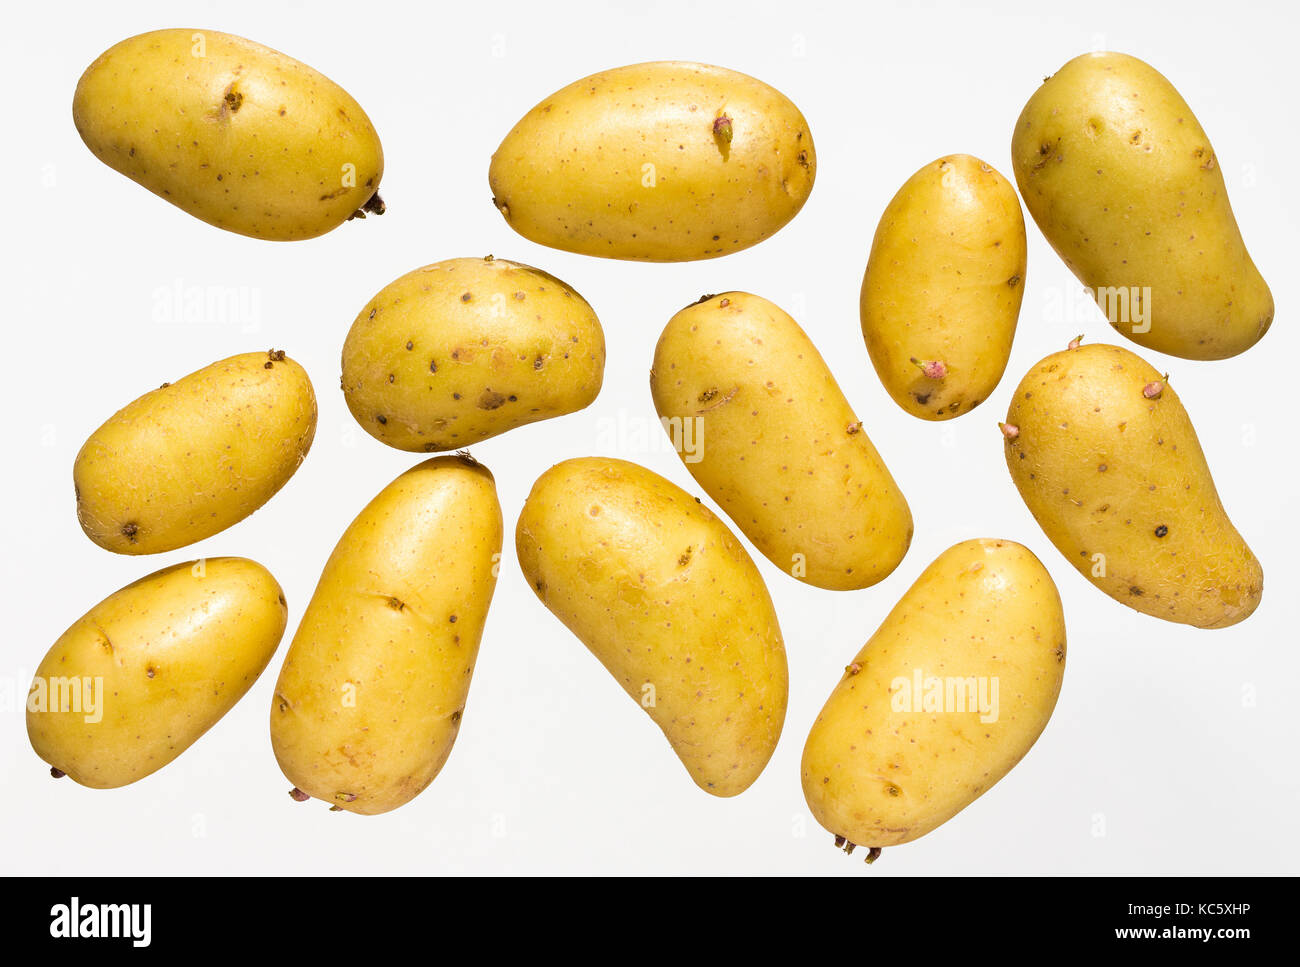 French new potatoes from the Beauce region. - Stock Image